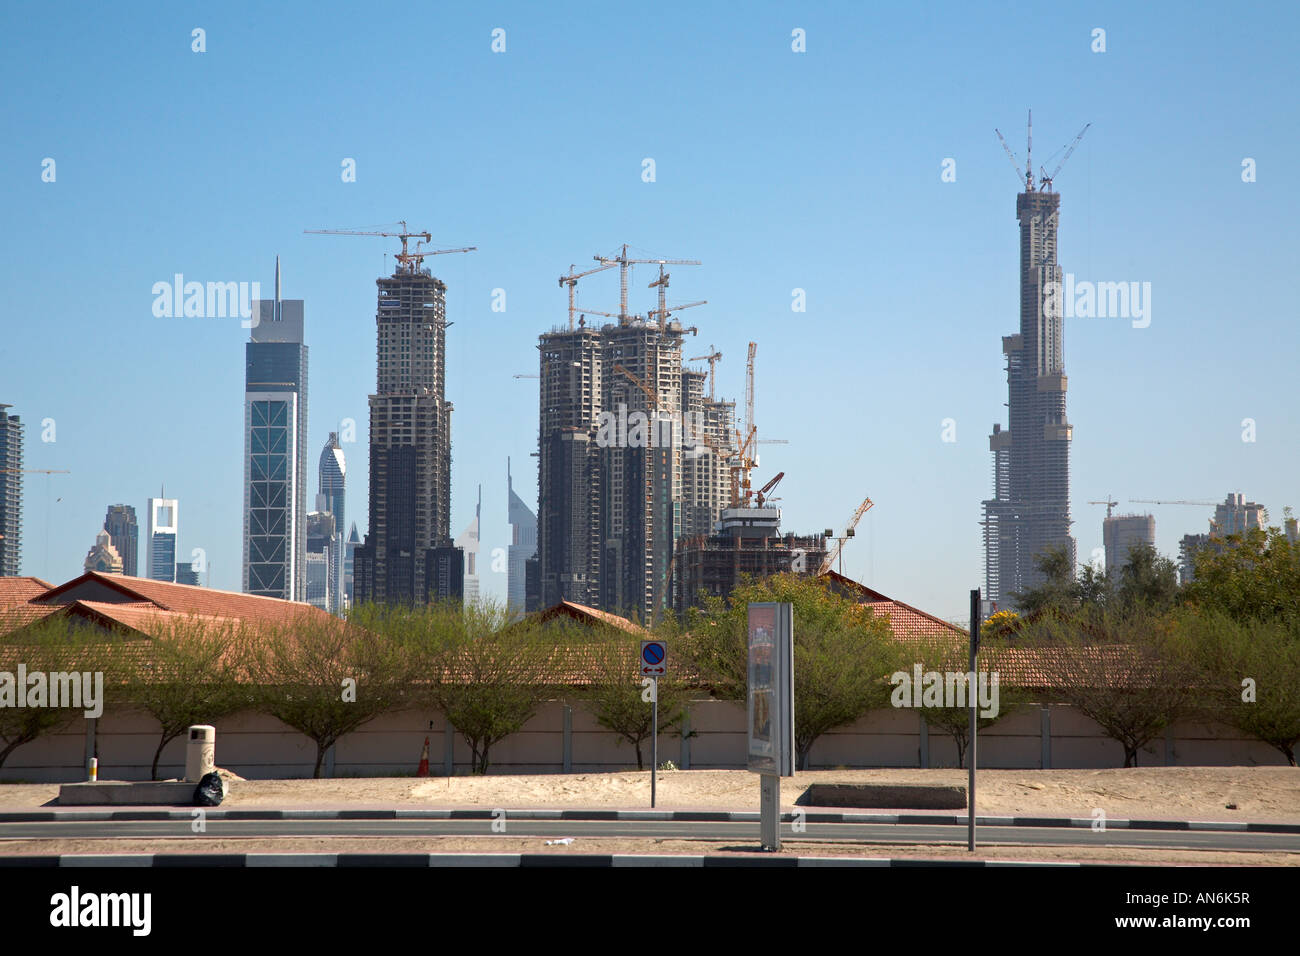 construction site of Burj Dubai, highest building of the world (700m), and surrounding area Stock Photo